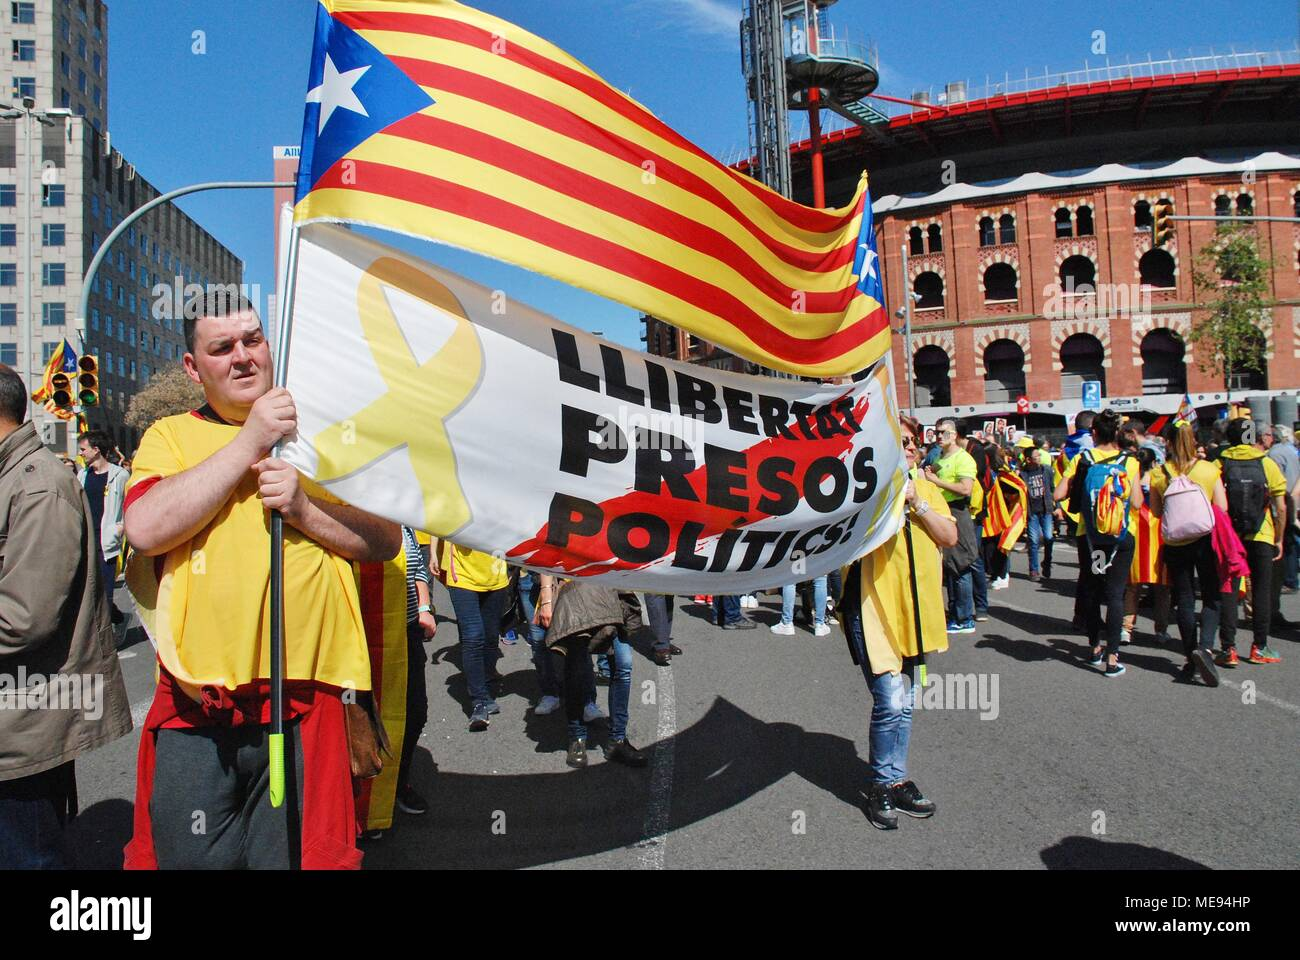 Catalans take part in the Llibertat Presos Politics march in support of jailed politicians at Placa Espanya in Barcelona, Spain on April 15, 2018. Stock Photo